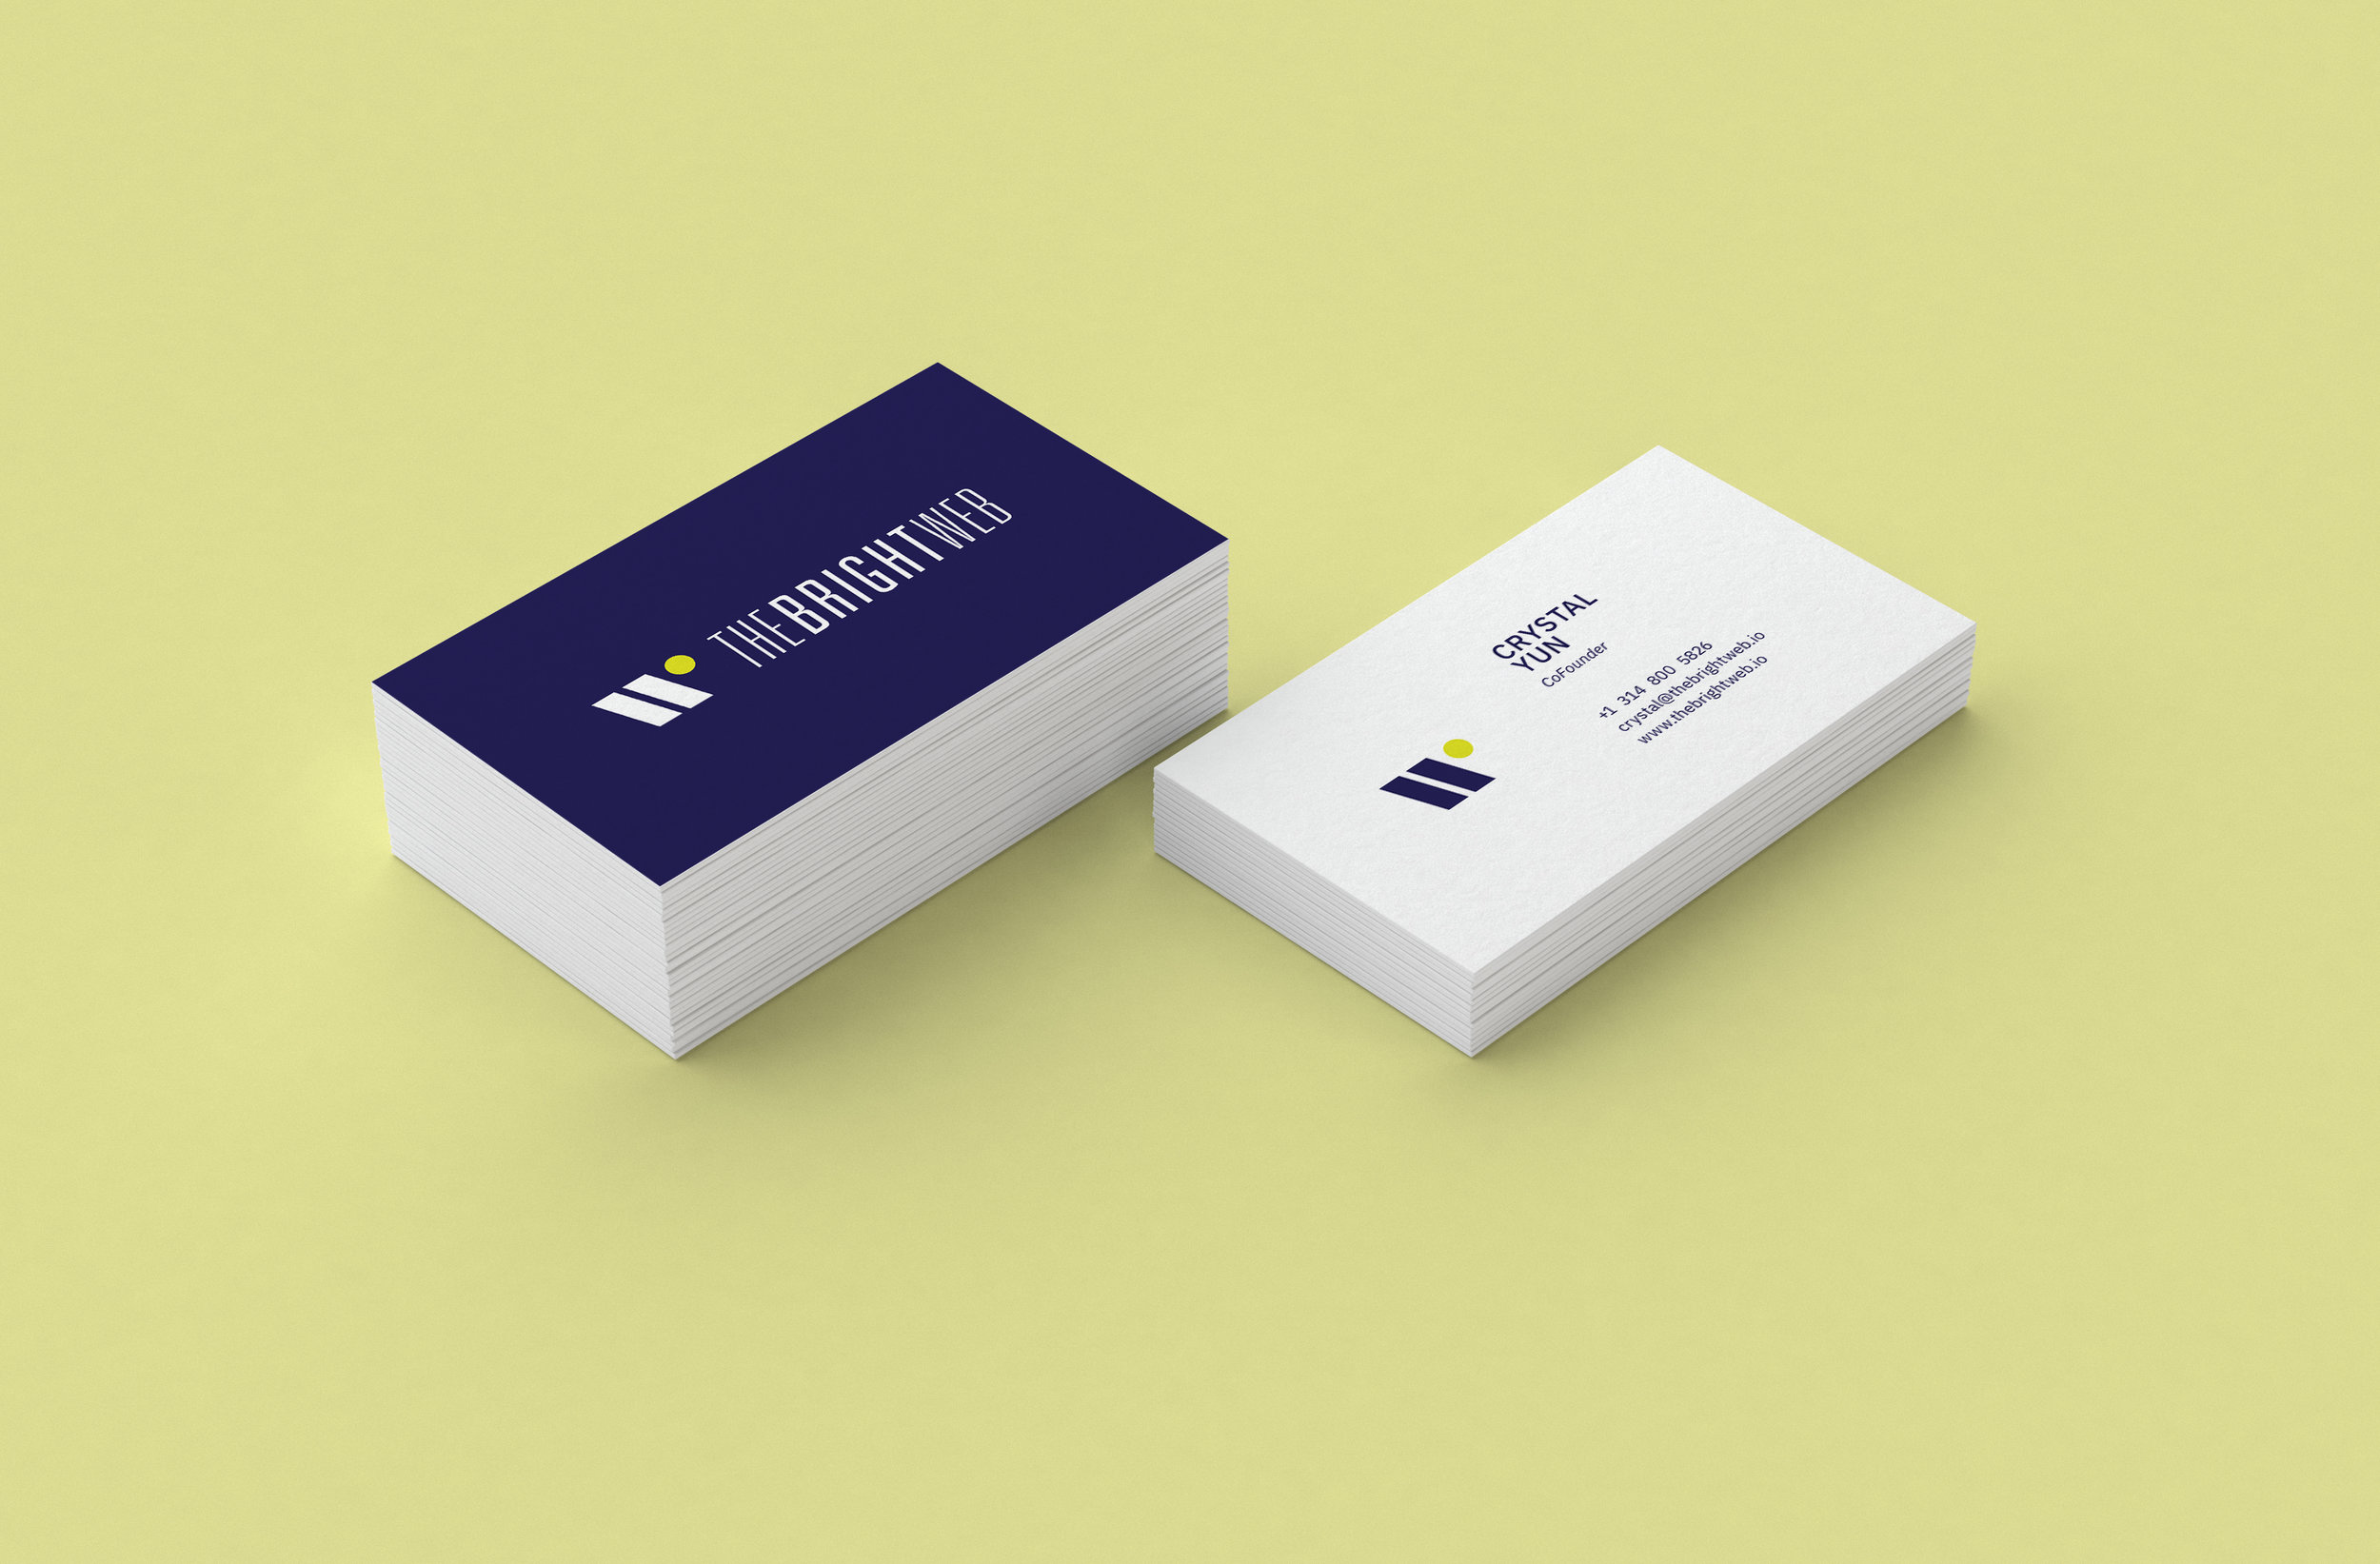 businesscard_mockup_crystalyun.jpg